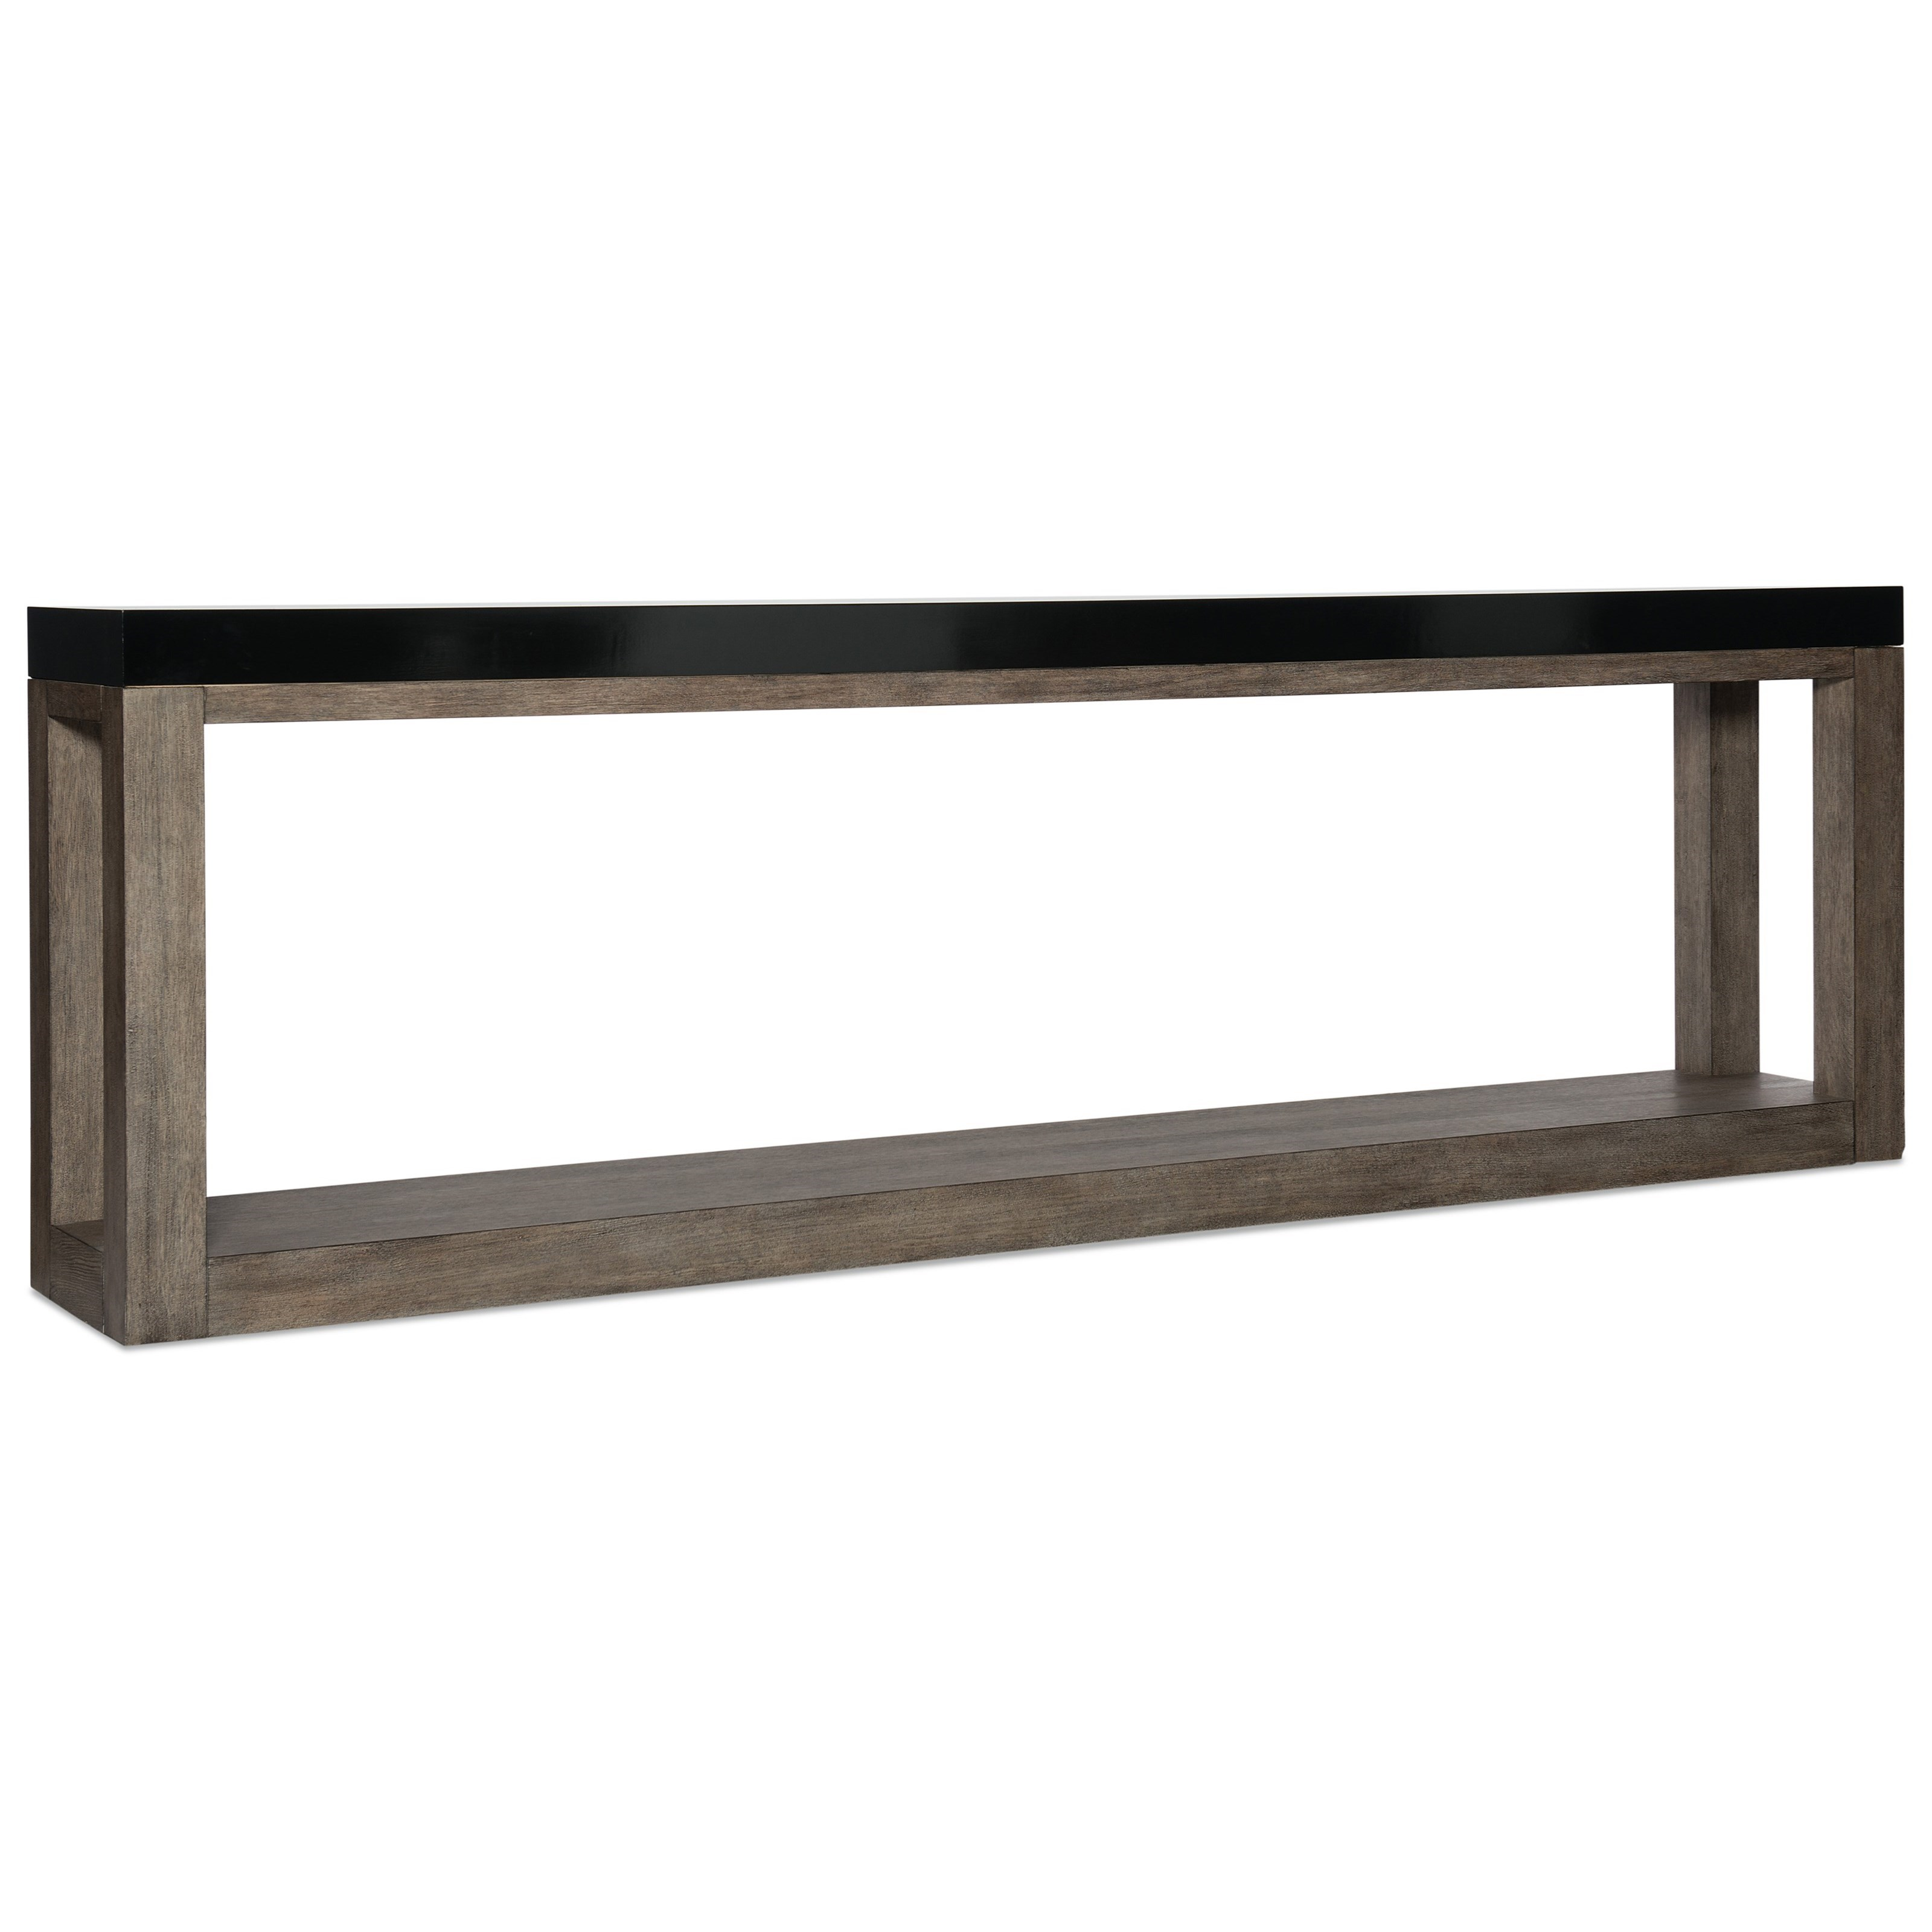 Melange Vienna Console by Hooker Furniture at Suburban Furniture